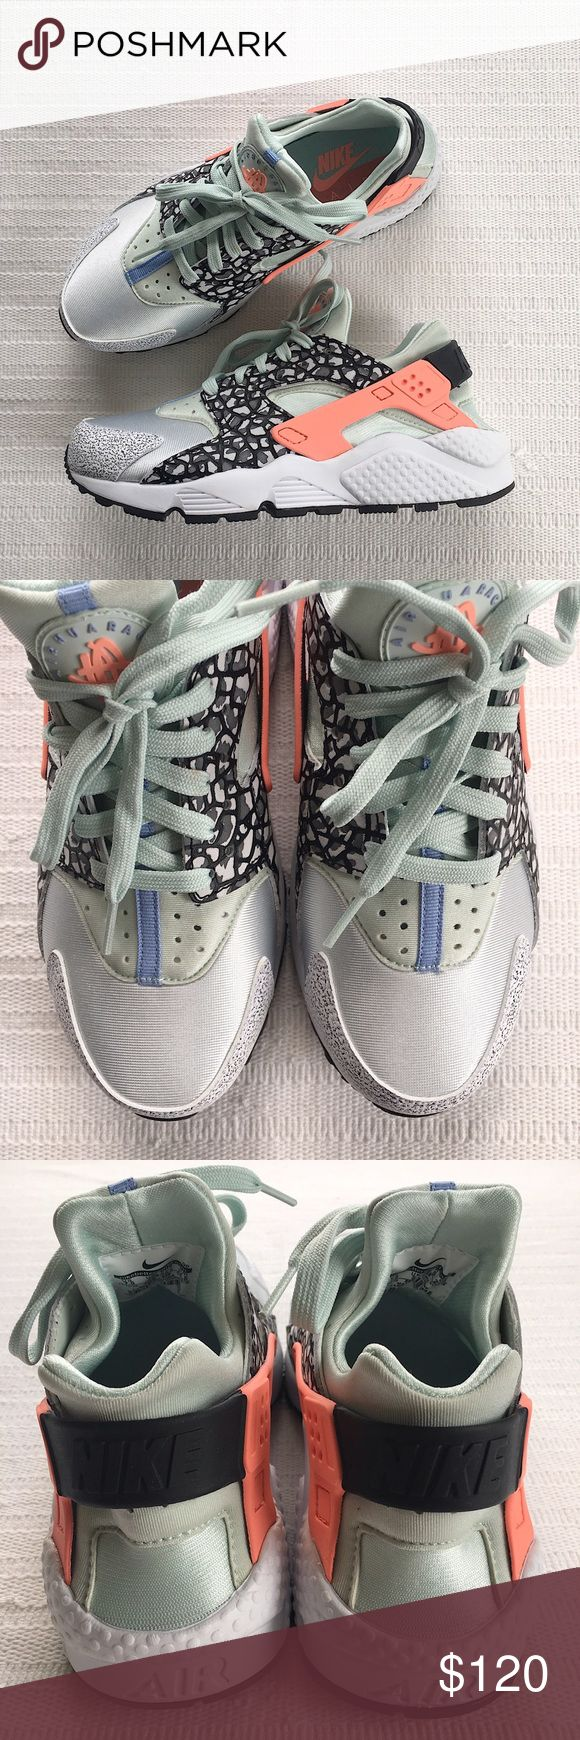 Women's Nike Air Huarache Run Premium Sneakers Women's Nike Air Huarache Run Premium Sneakers Style/Color: 683818-005  * Women's size 7.5  * NEW in box (no lid) * No trades * 100% authentic Nike Shoes Sneakers